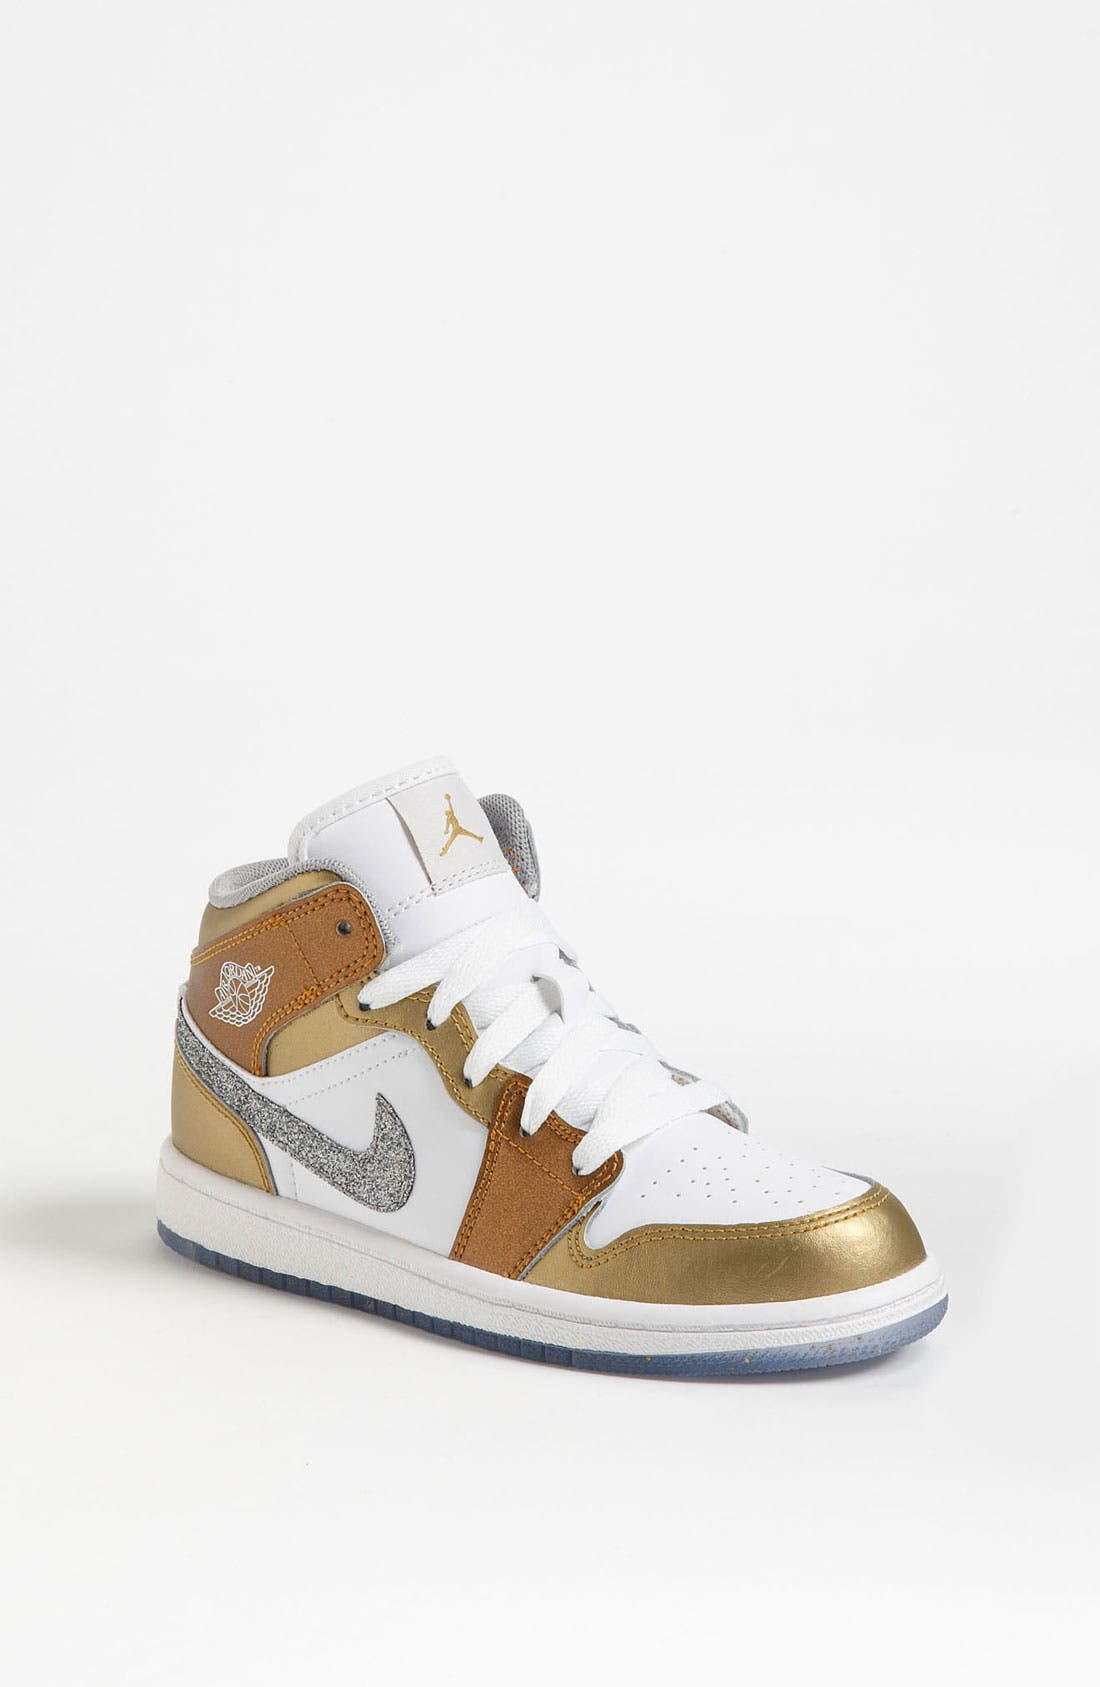 Alternate Image 1 Selected - Nike 'Jordan 1 Phat' Sneaker (Toddler & Little Kid)